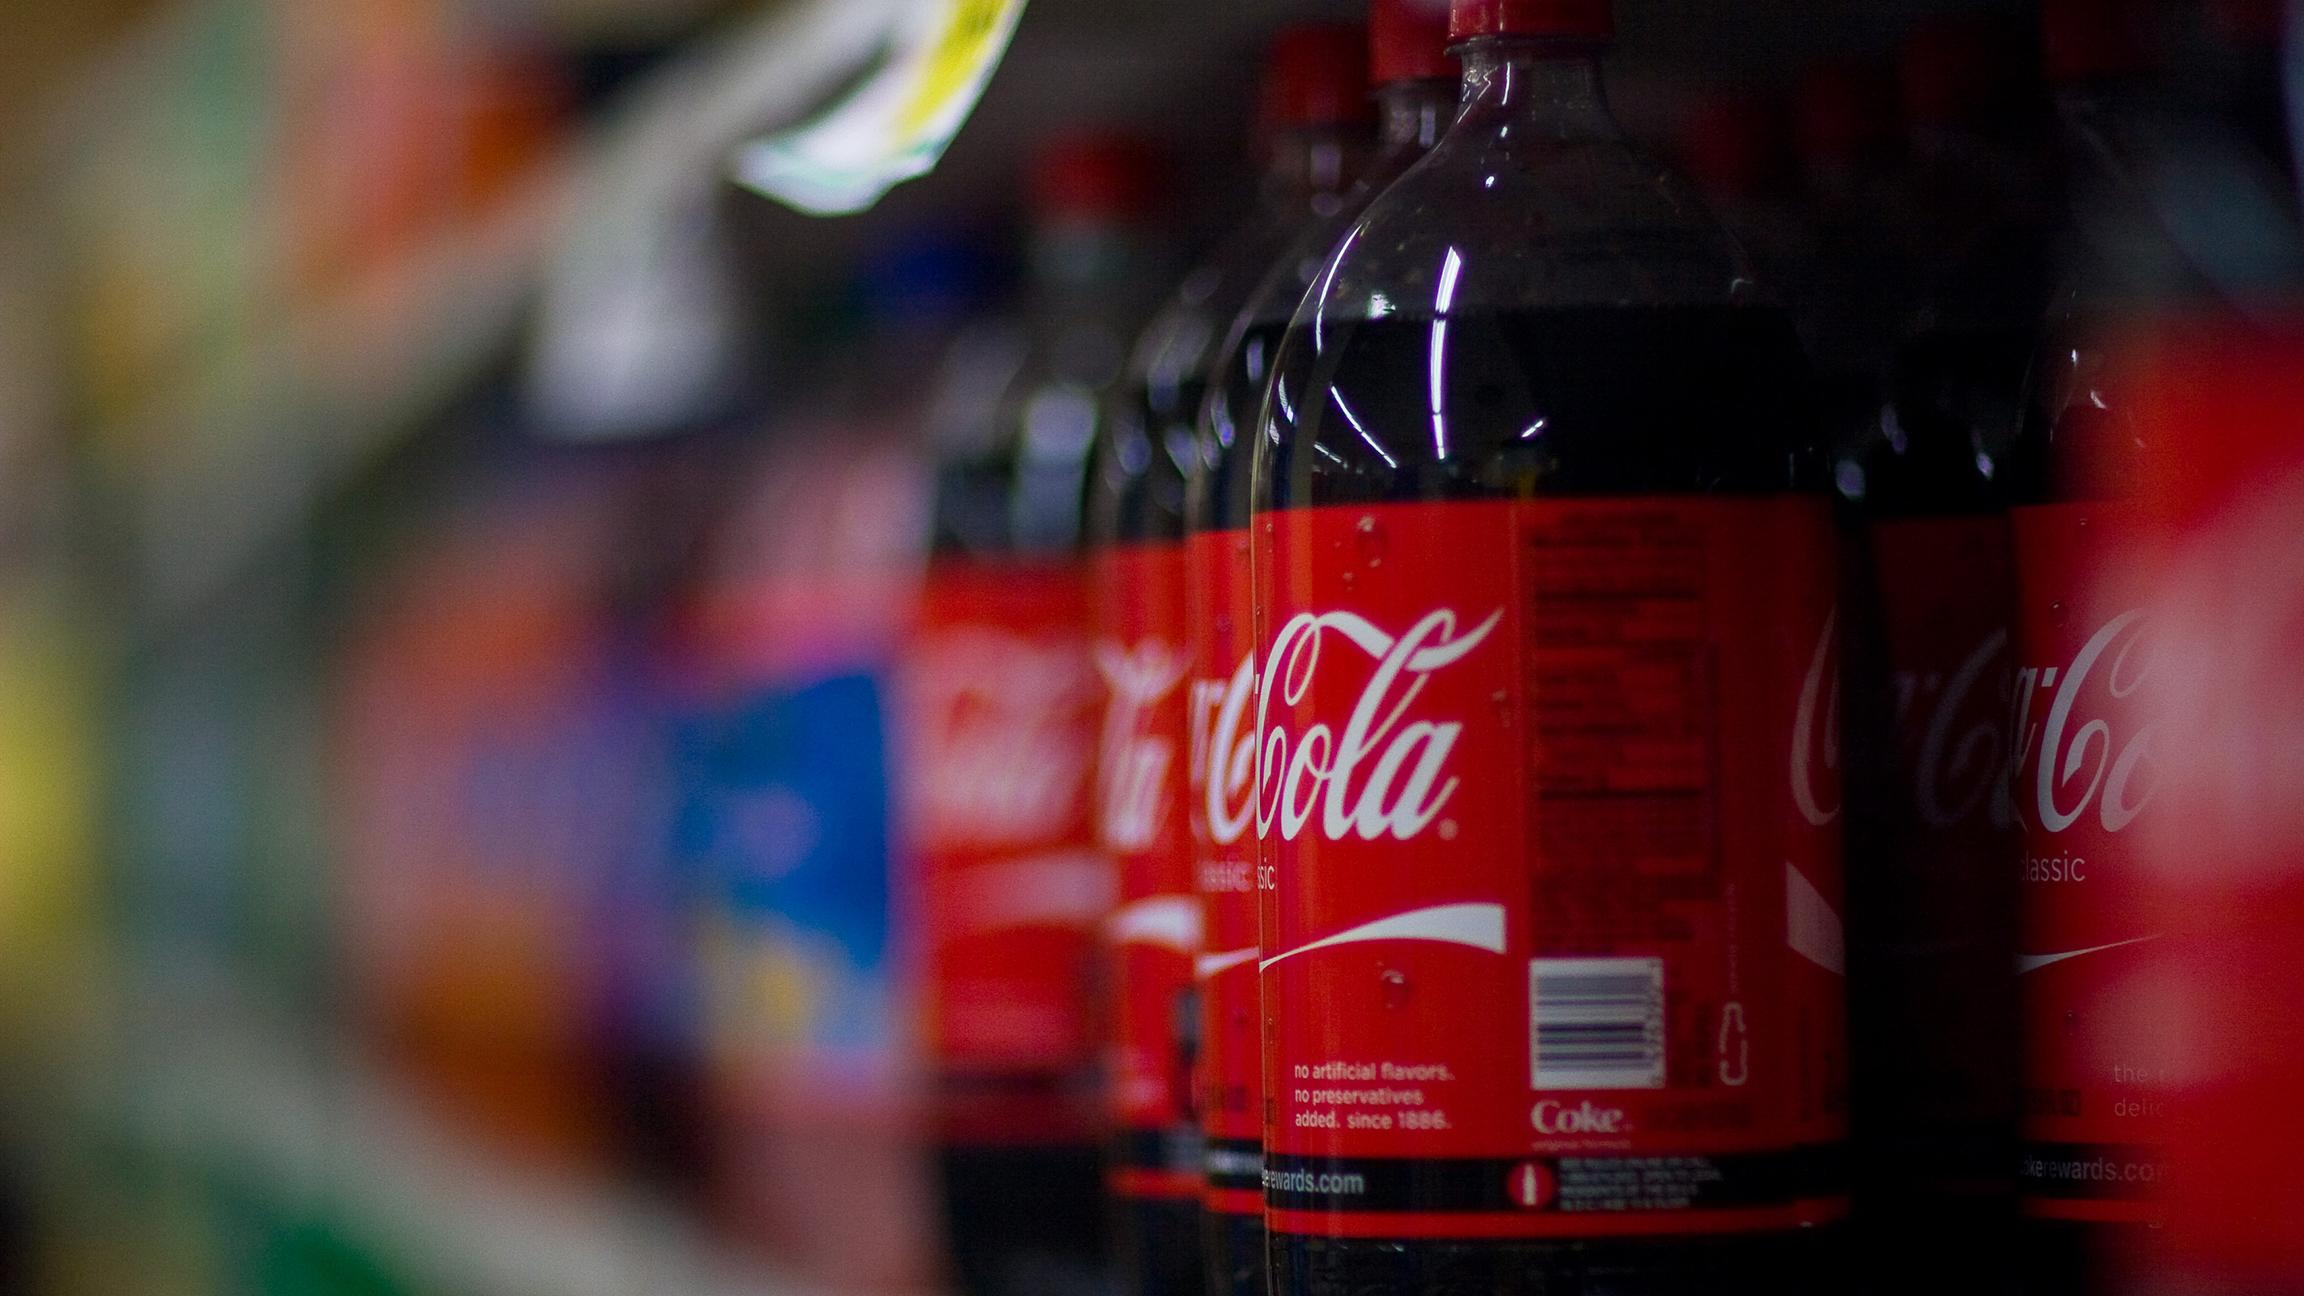 Walgreens Charged Soda Tax On Unsweetened Beverages